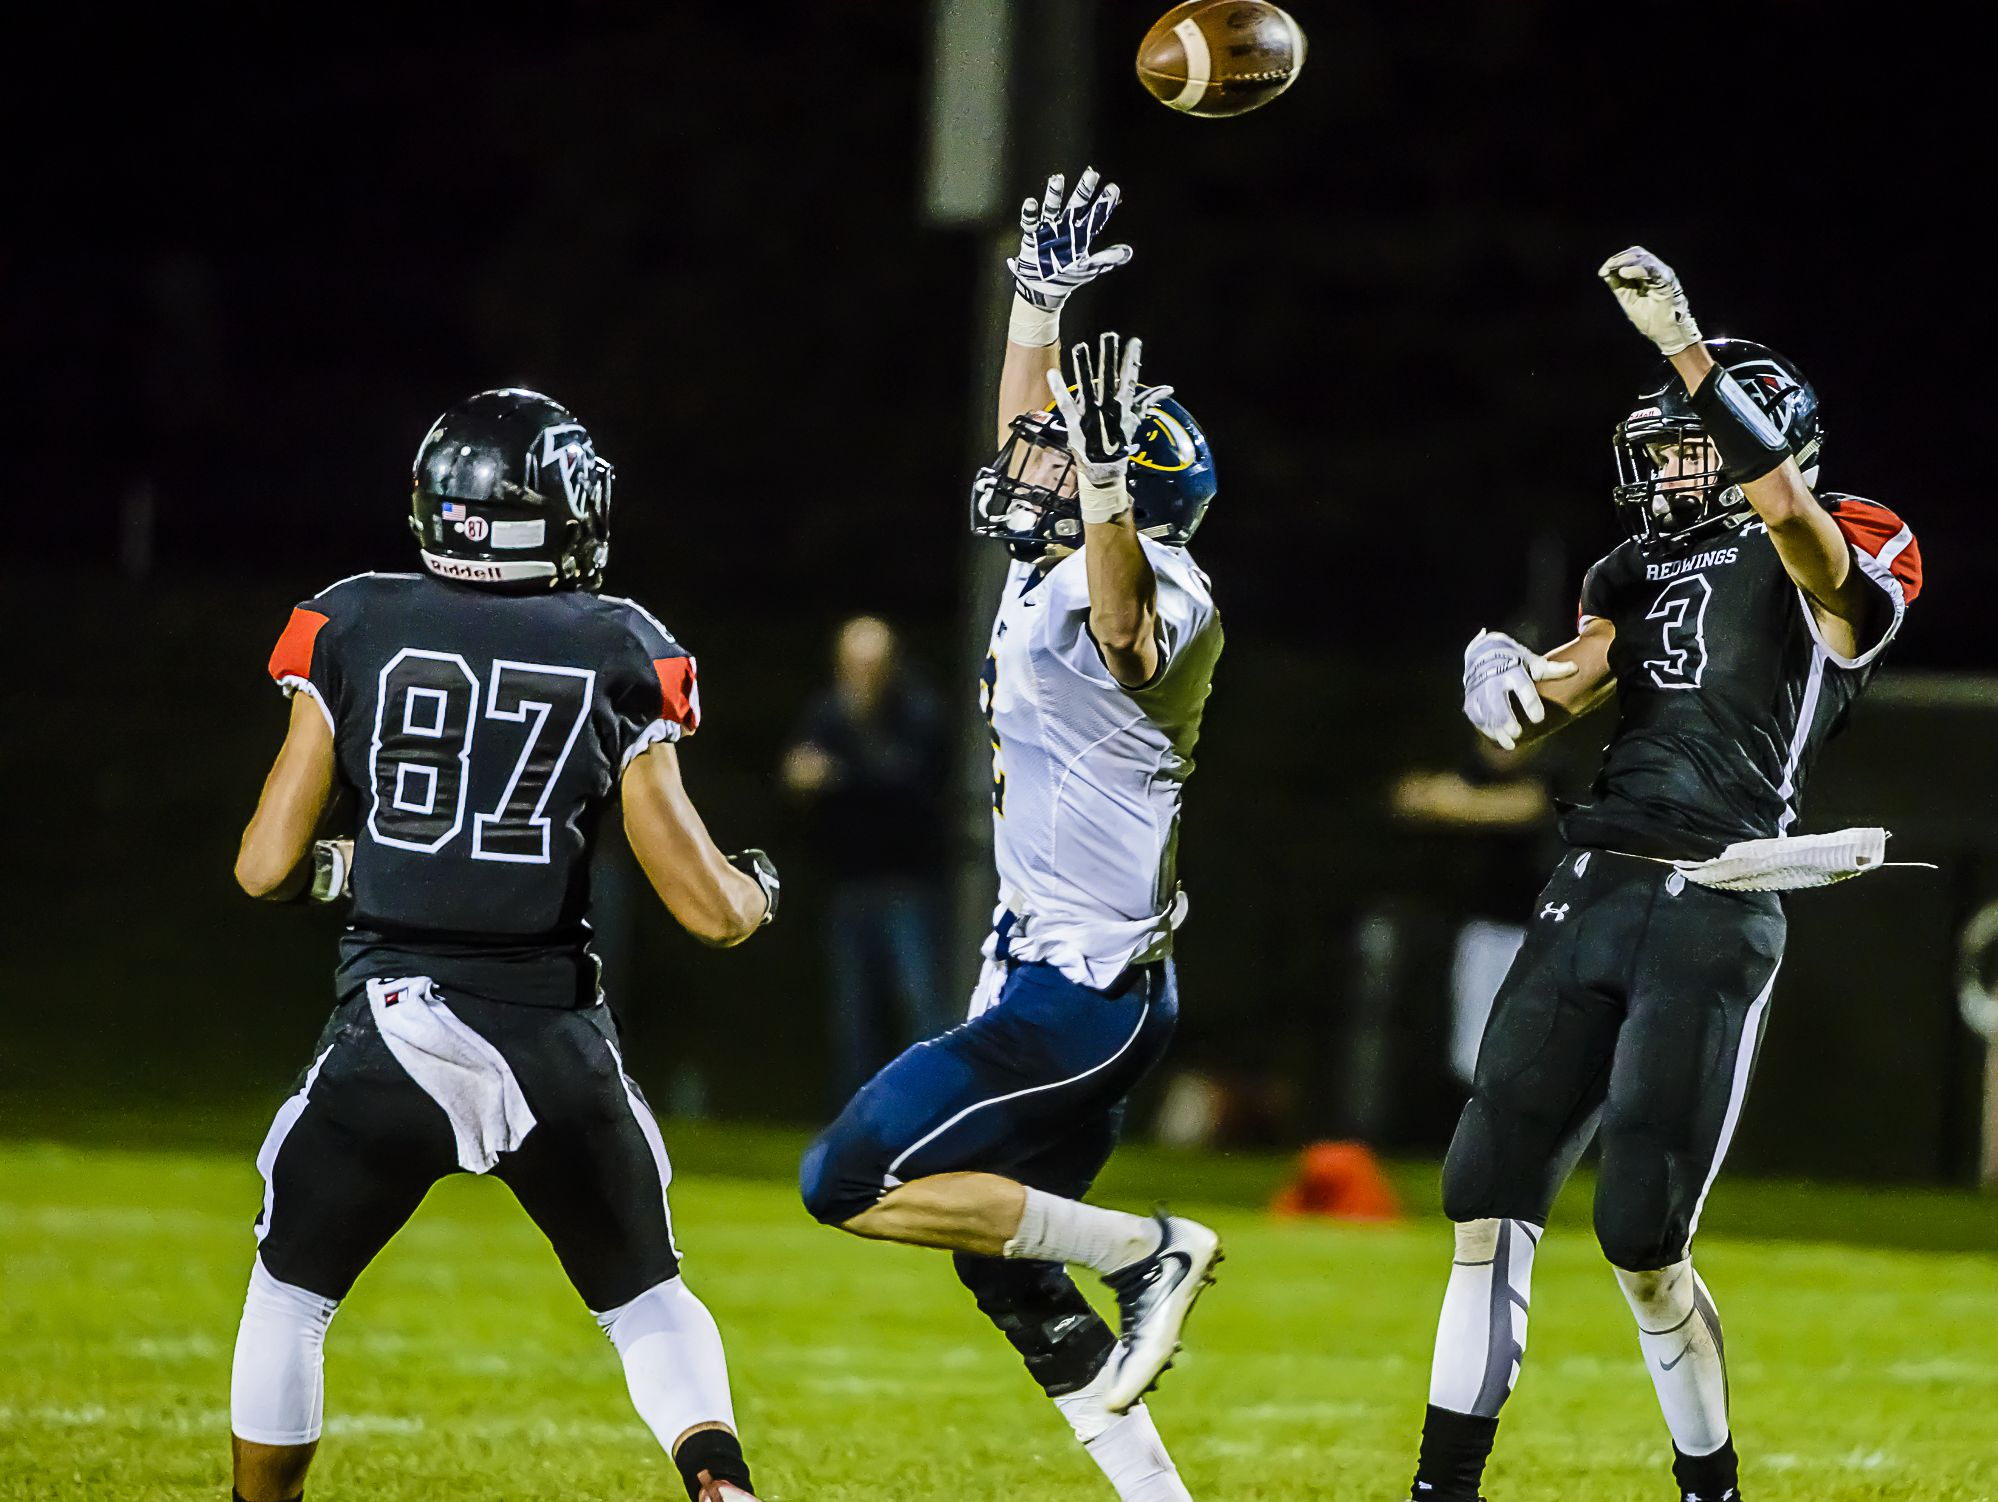 A pass meant for Beau Yabs ,center, of DeWitt is deflected right into the arms of St. Johns defender Hayden Dyer ,87, with 1:25 remaining in the 2nd quarter of their game Friday October 7, 2016 in St. Johns. KEVIN W. FOWLER PHOTO